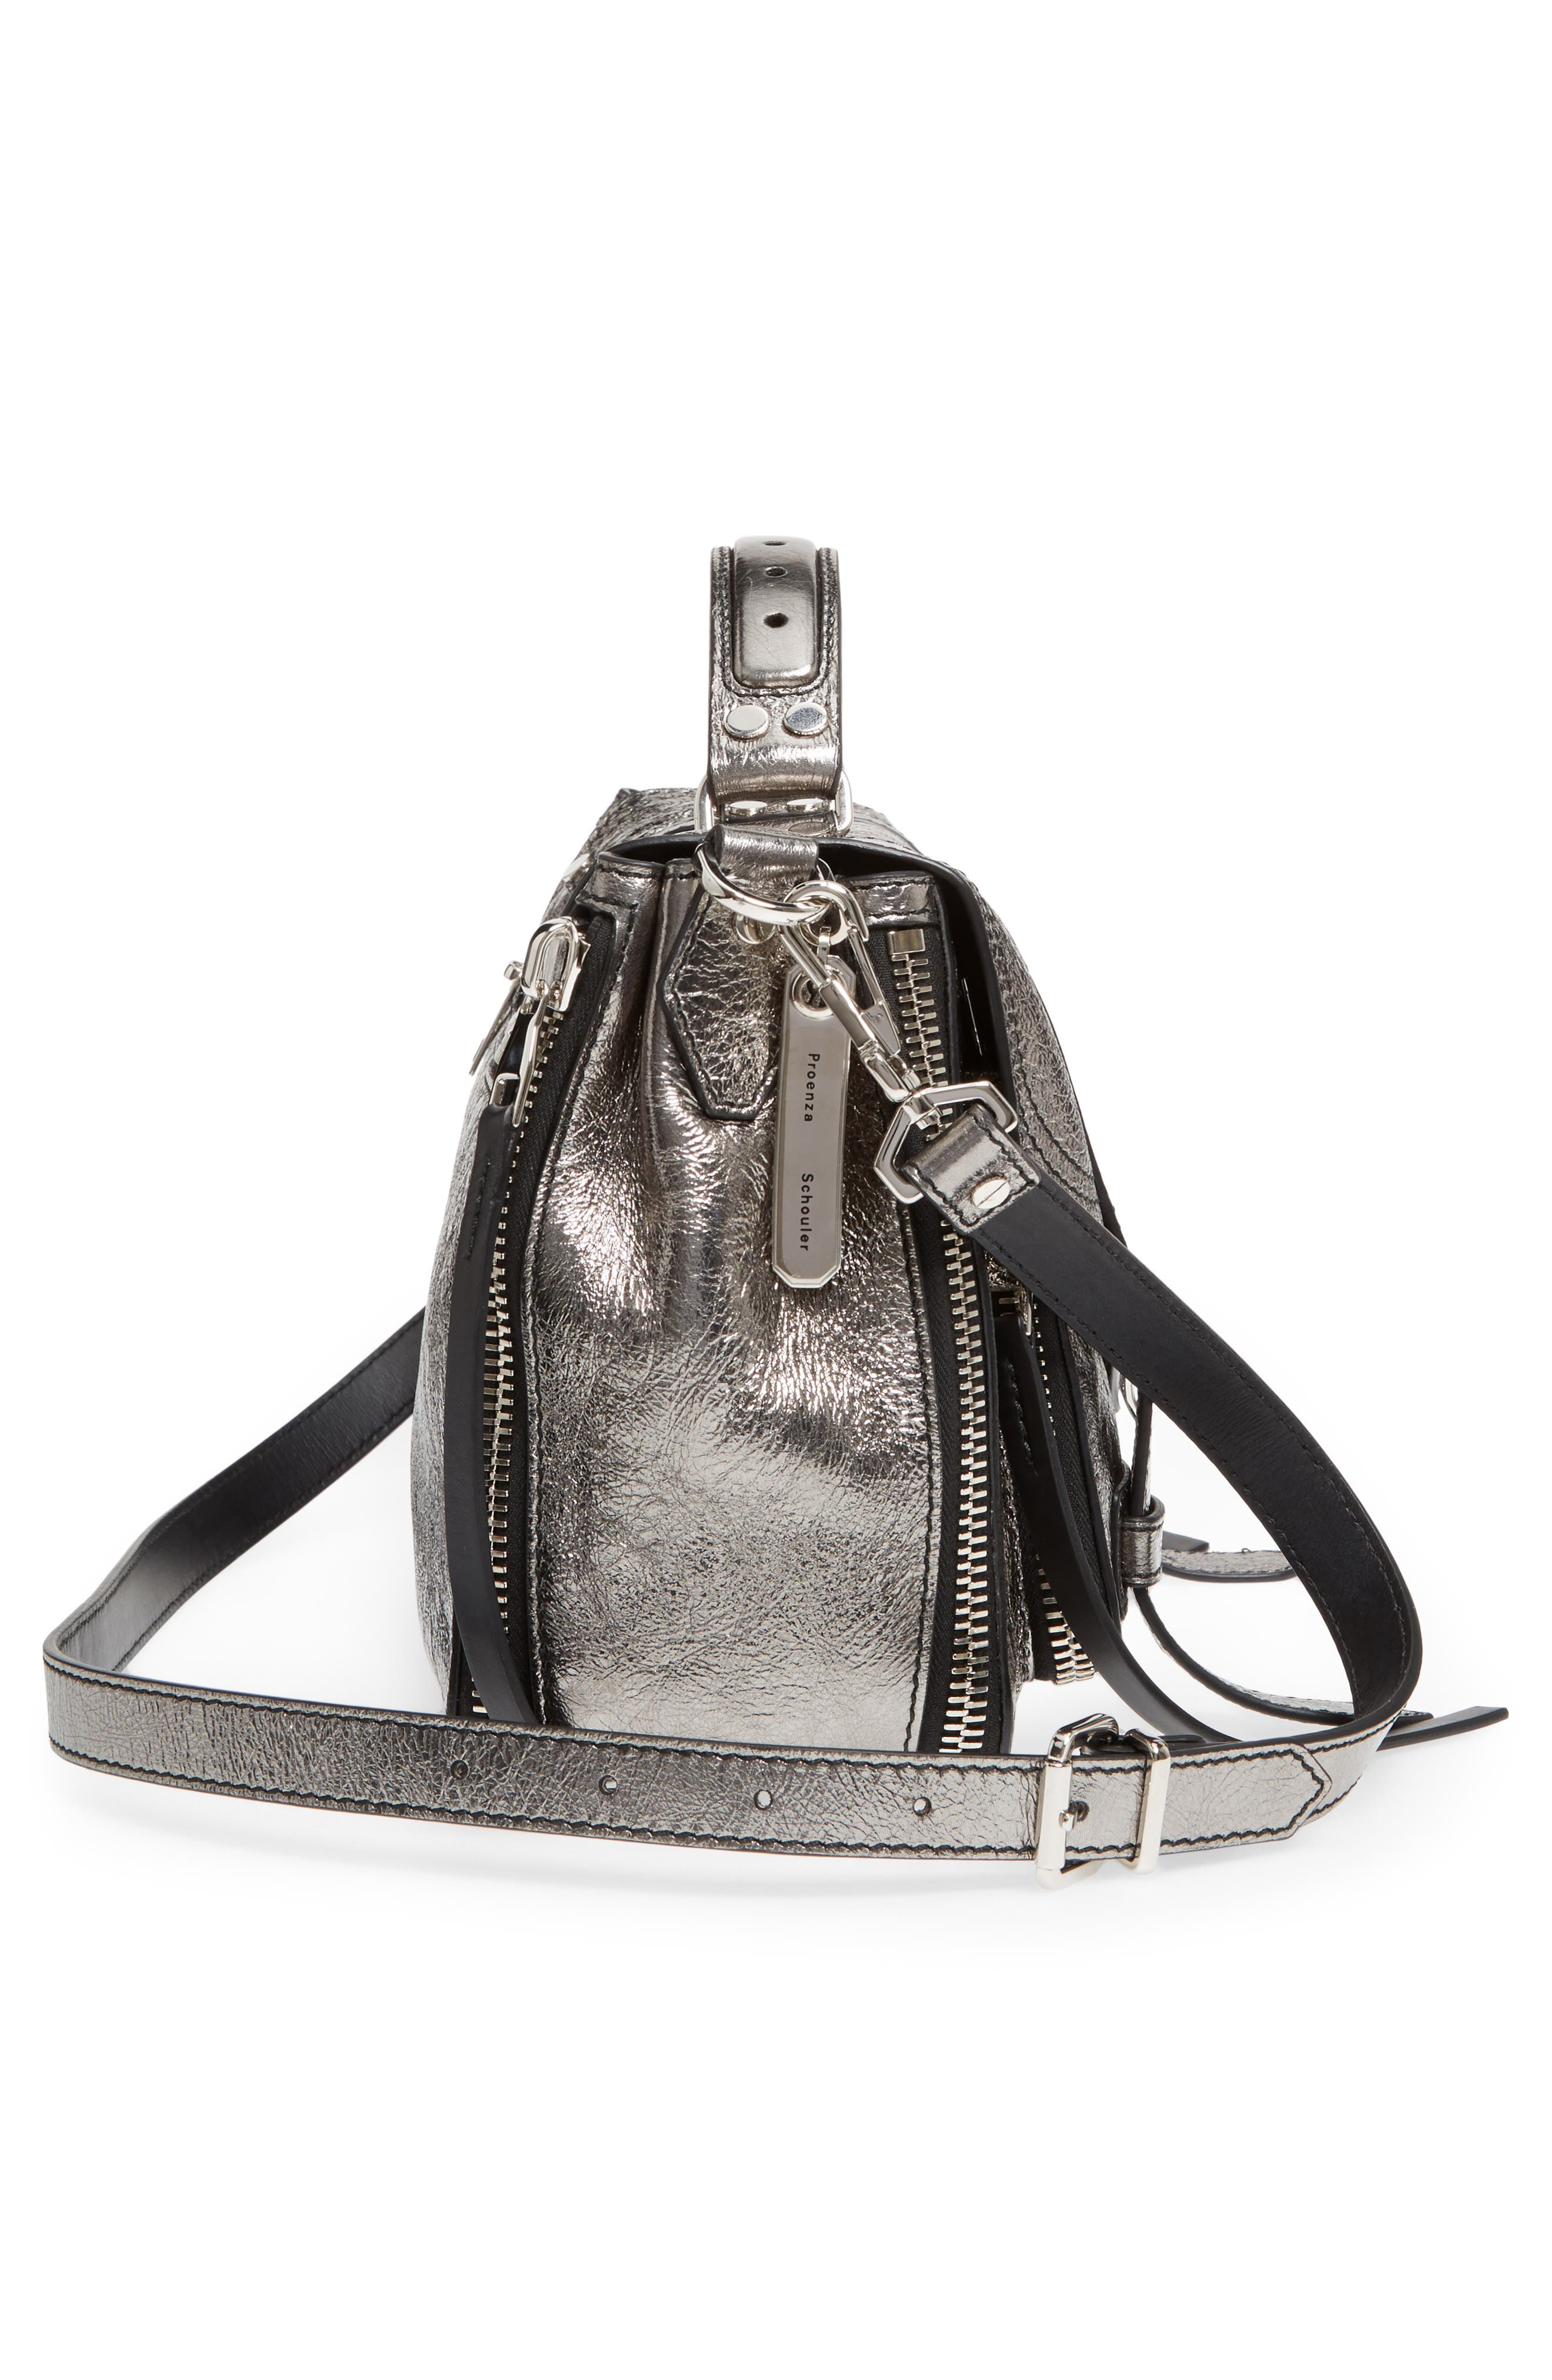 Medium PS1 Metallic Calfskin Satchel,                             Alternate thumbnail 5, color,                             Dark Silver